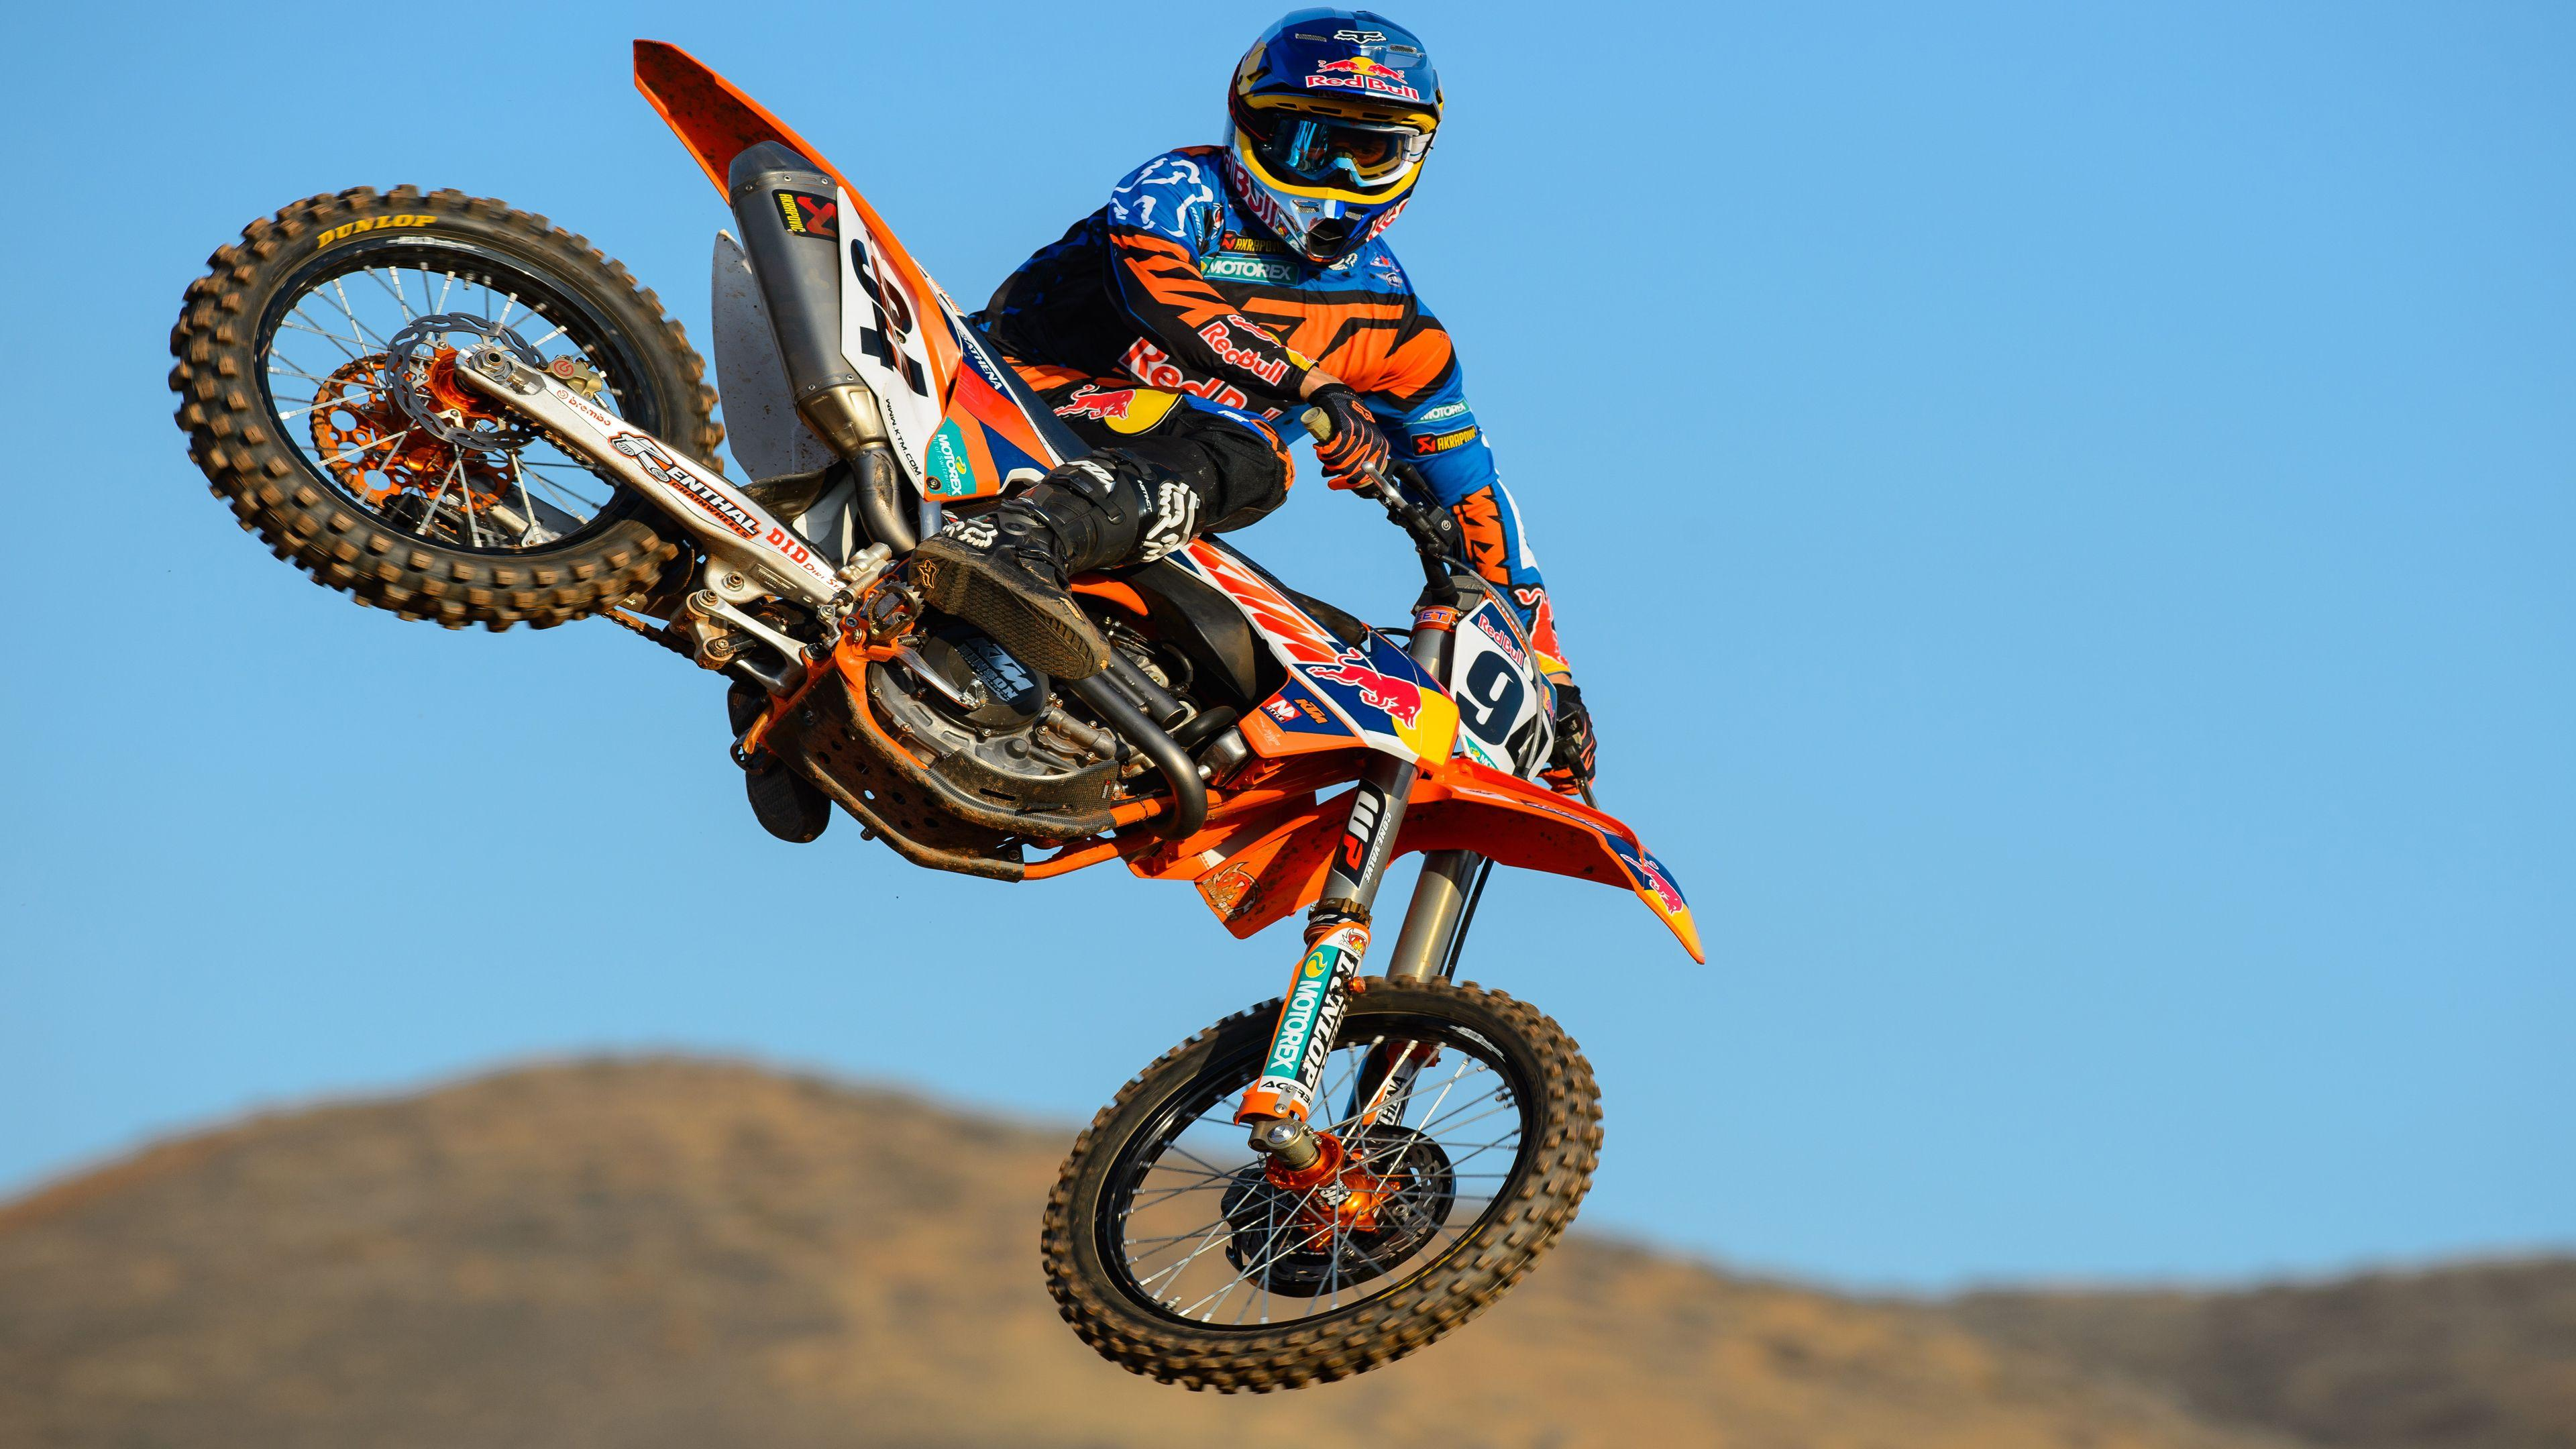 Ktm Motocross Wallpaper Hd Ktm Logo Wallpapers Wallpaper Cave